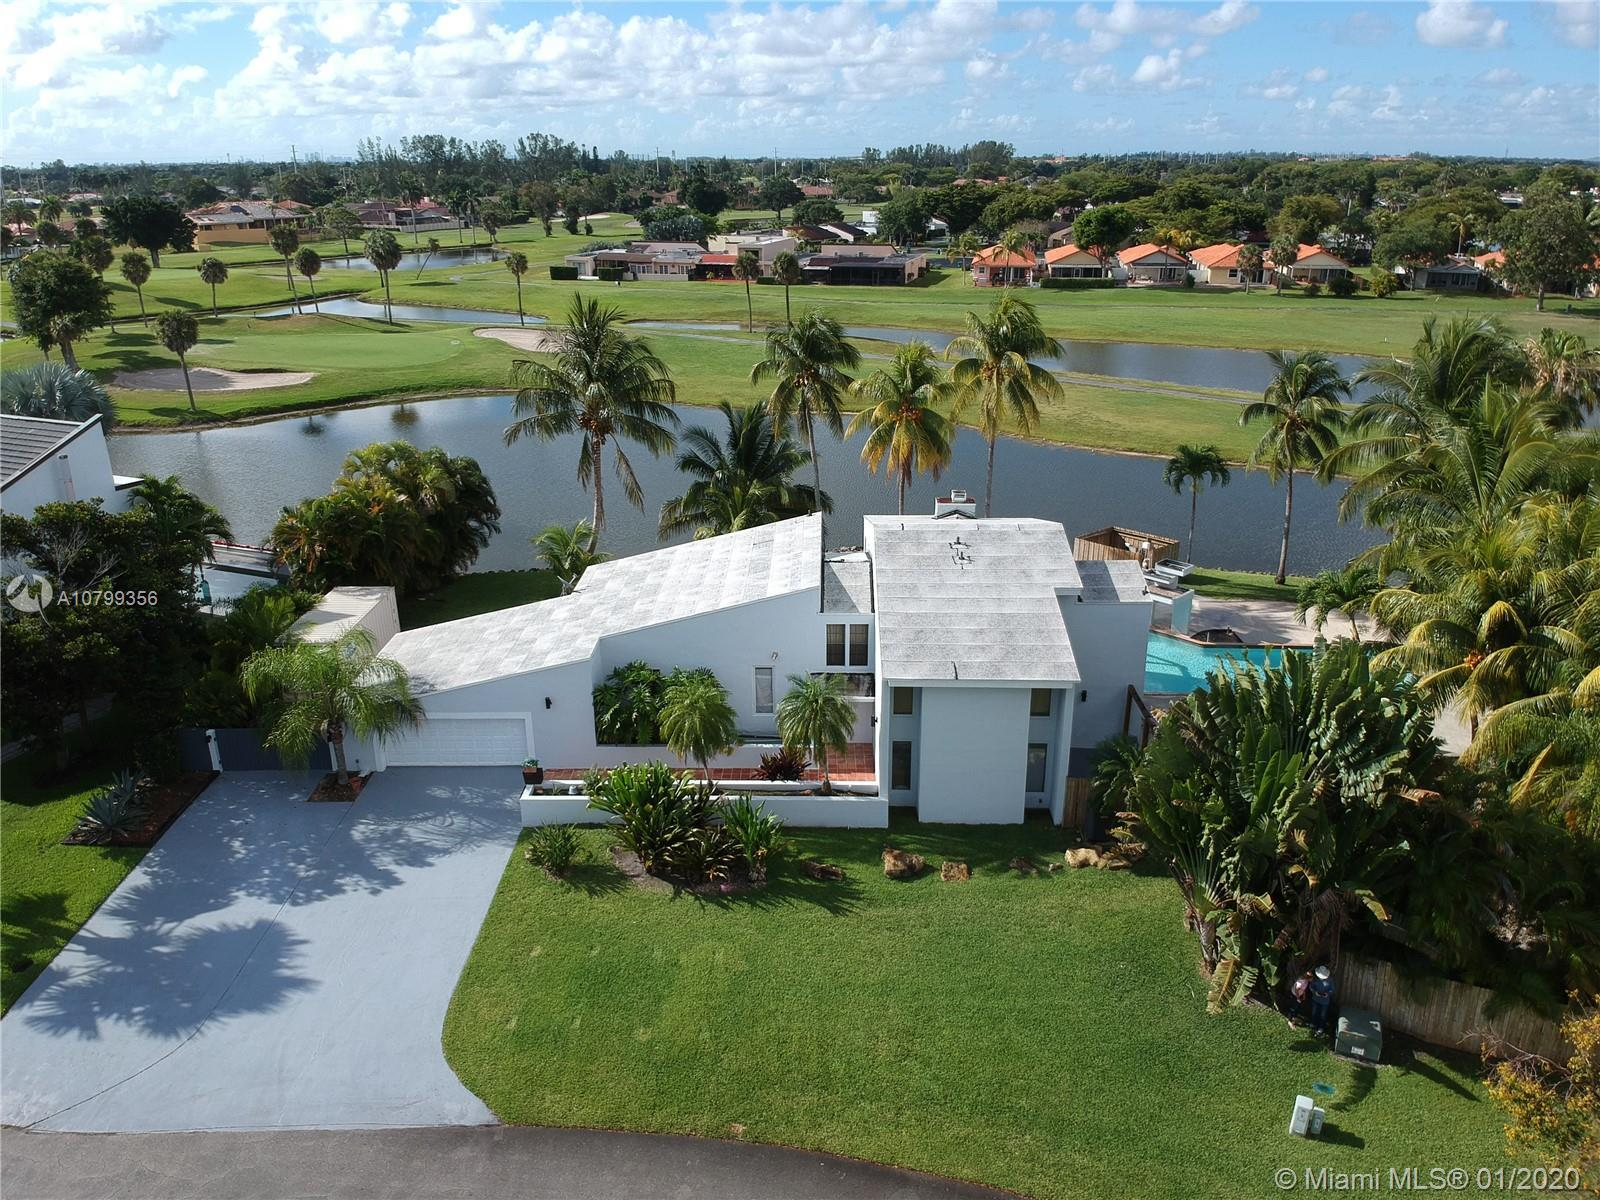 Great opportunity to own this unique 2 story lakefront home overlooking the Country Club Golf Course